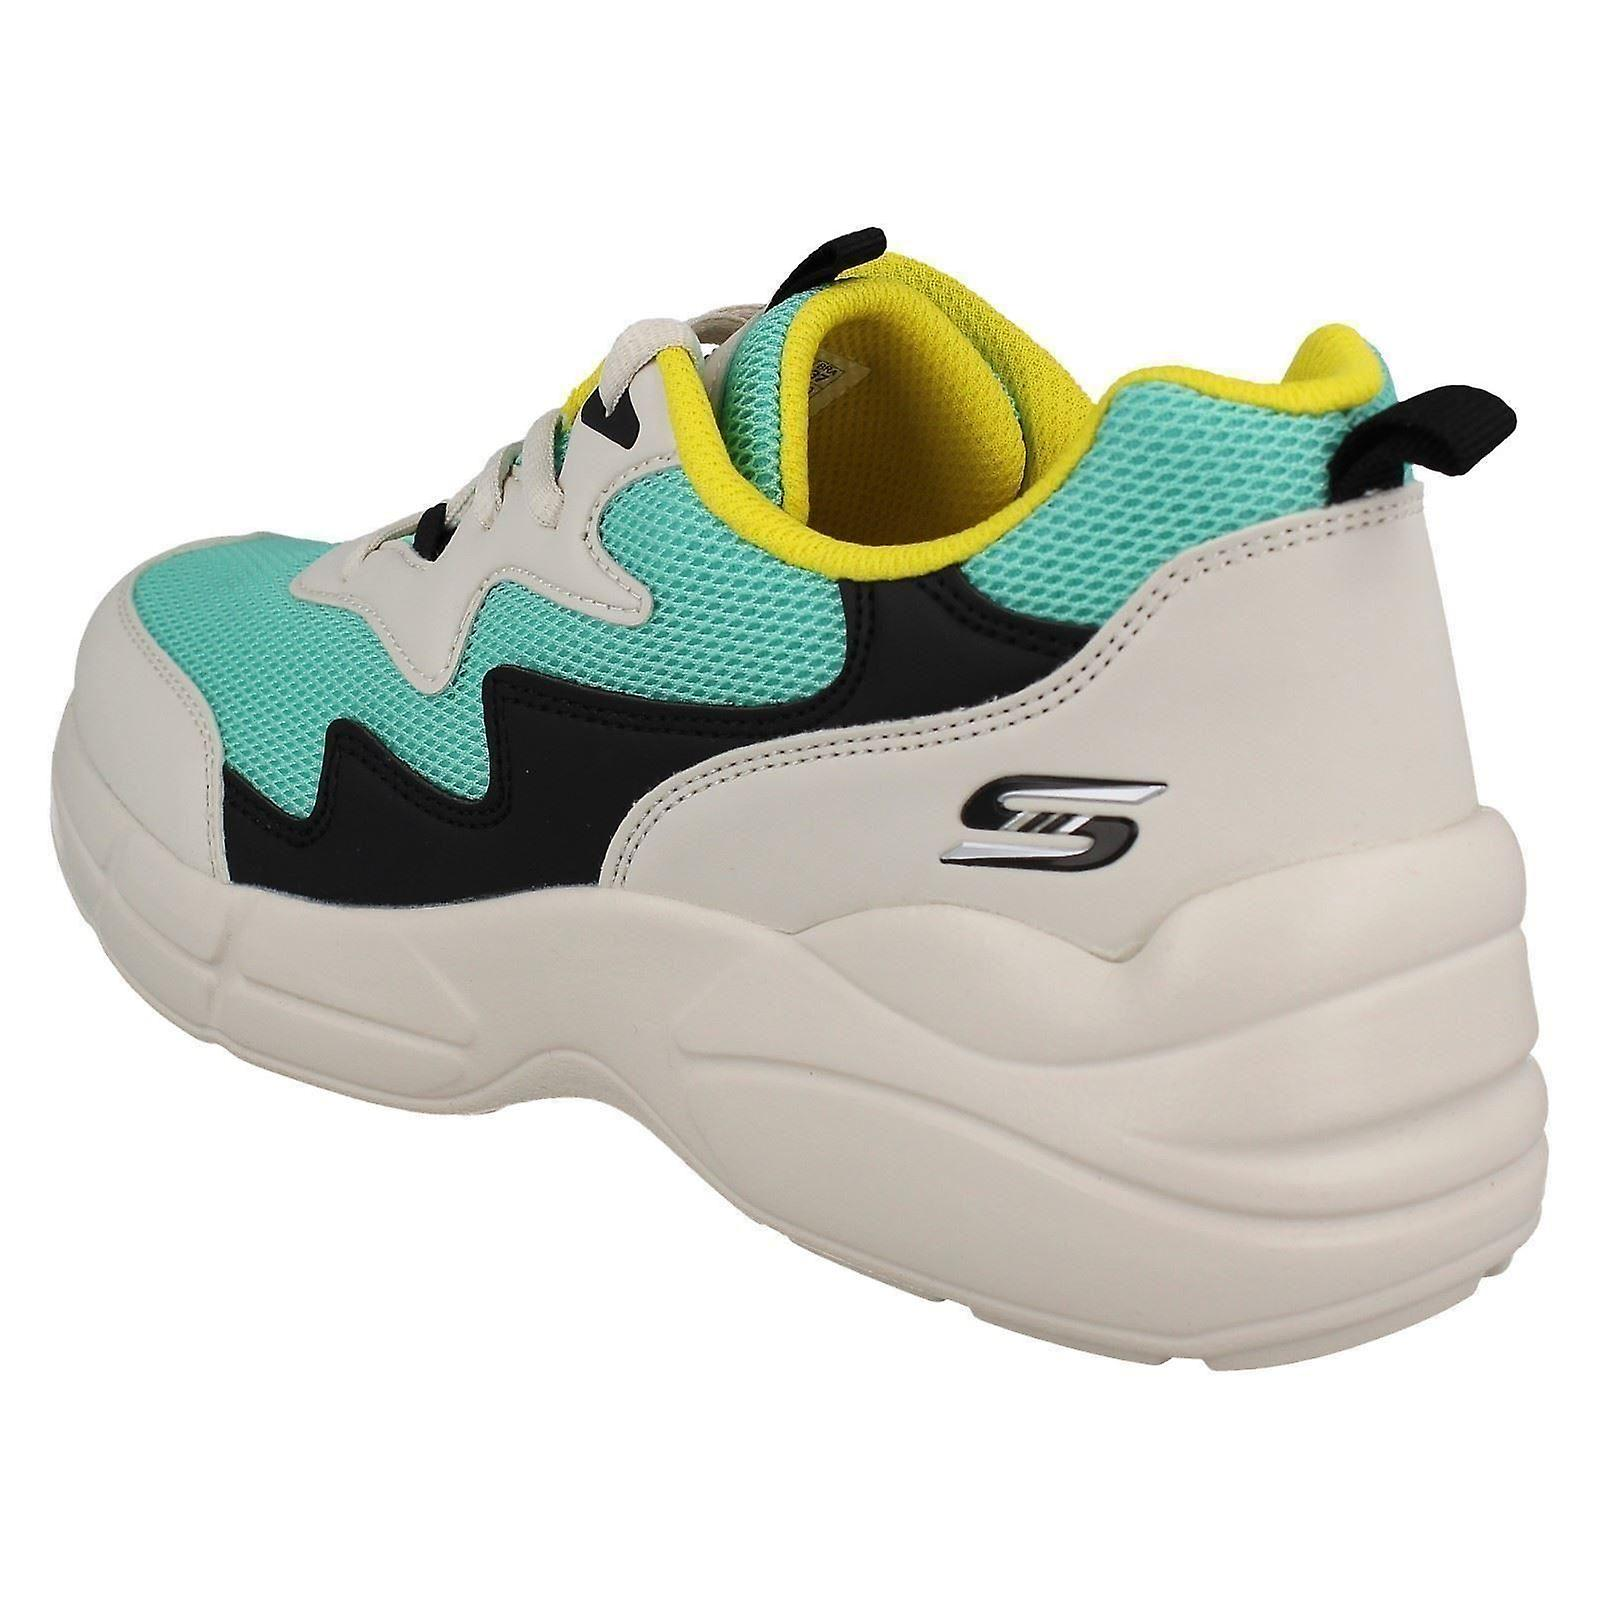 Ladies Skechers Lace Up Memory Foam Casual Trainers Popsicle 33122